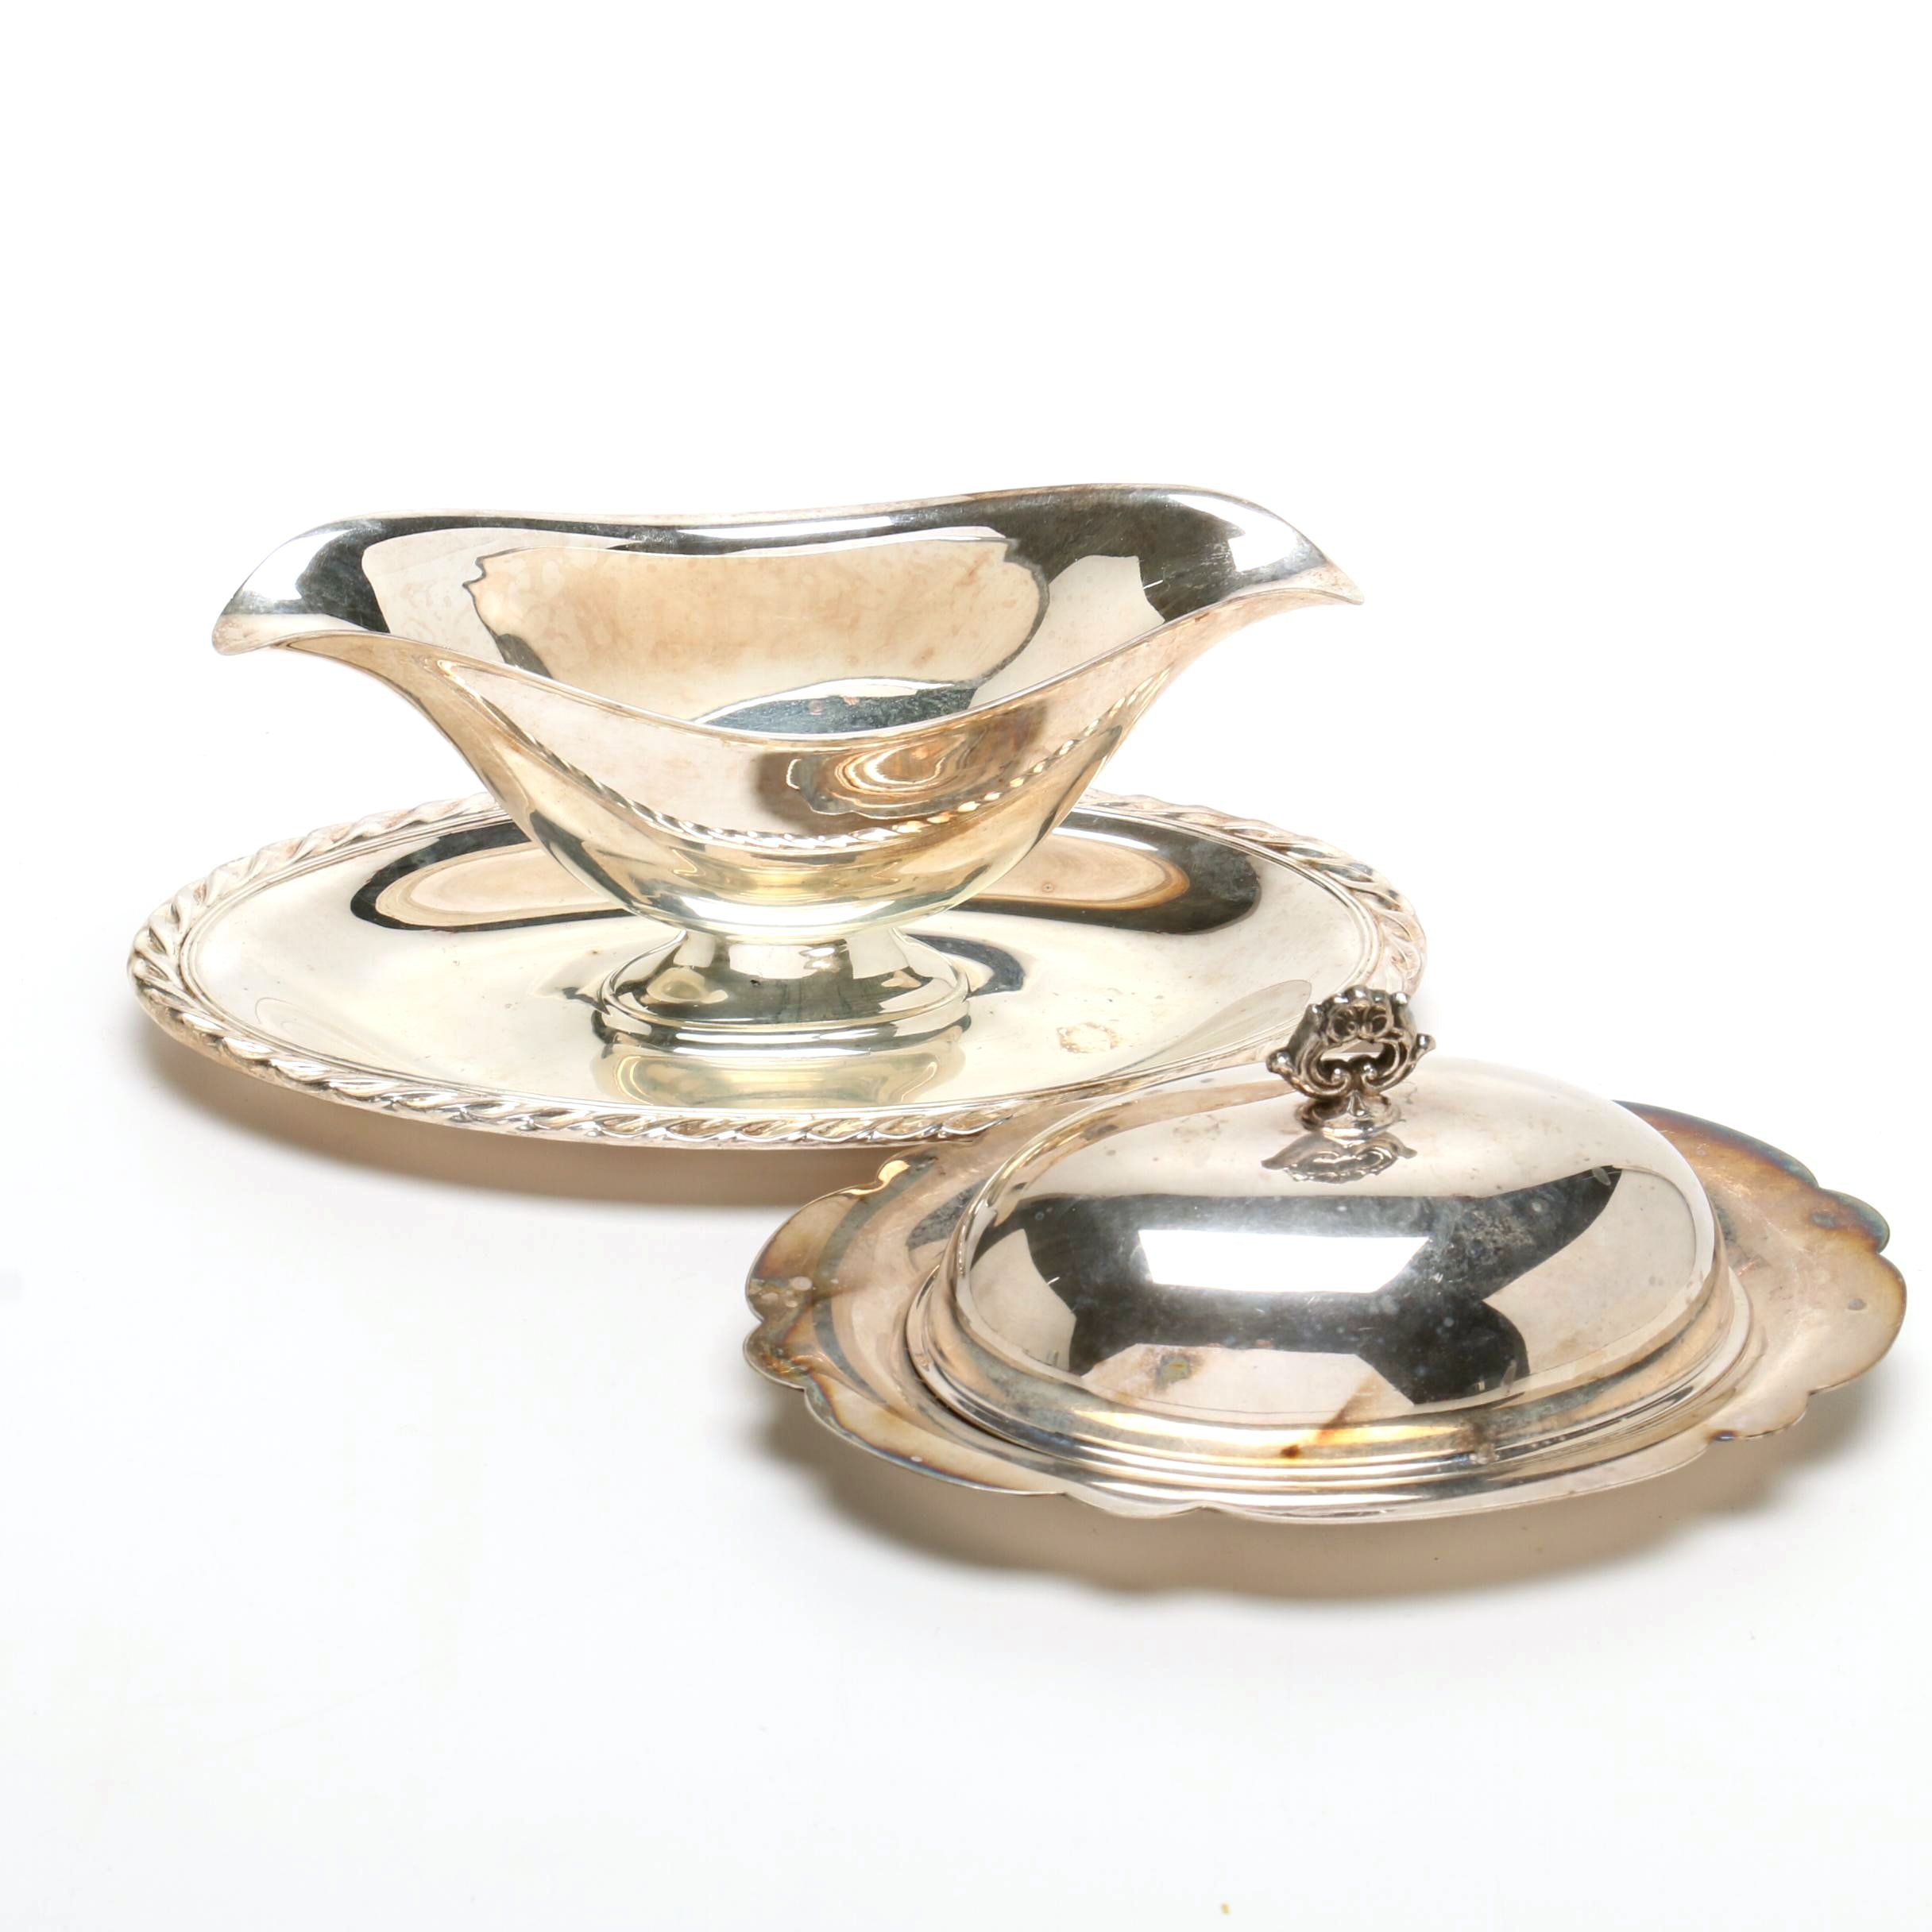 Silver Plated Gravy Boat and Butter Dish